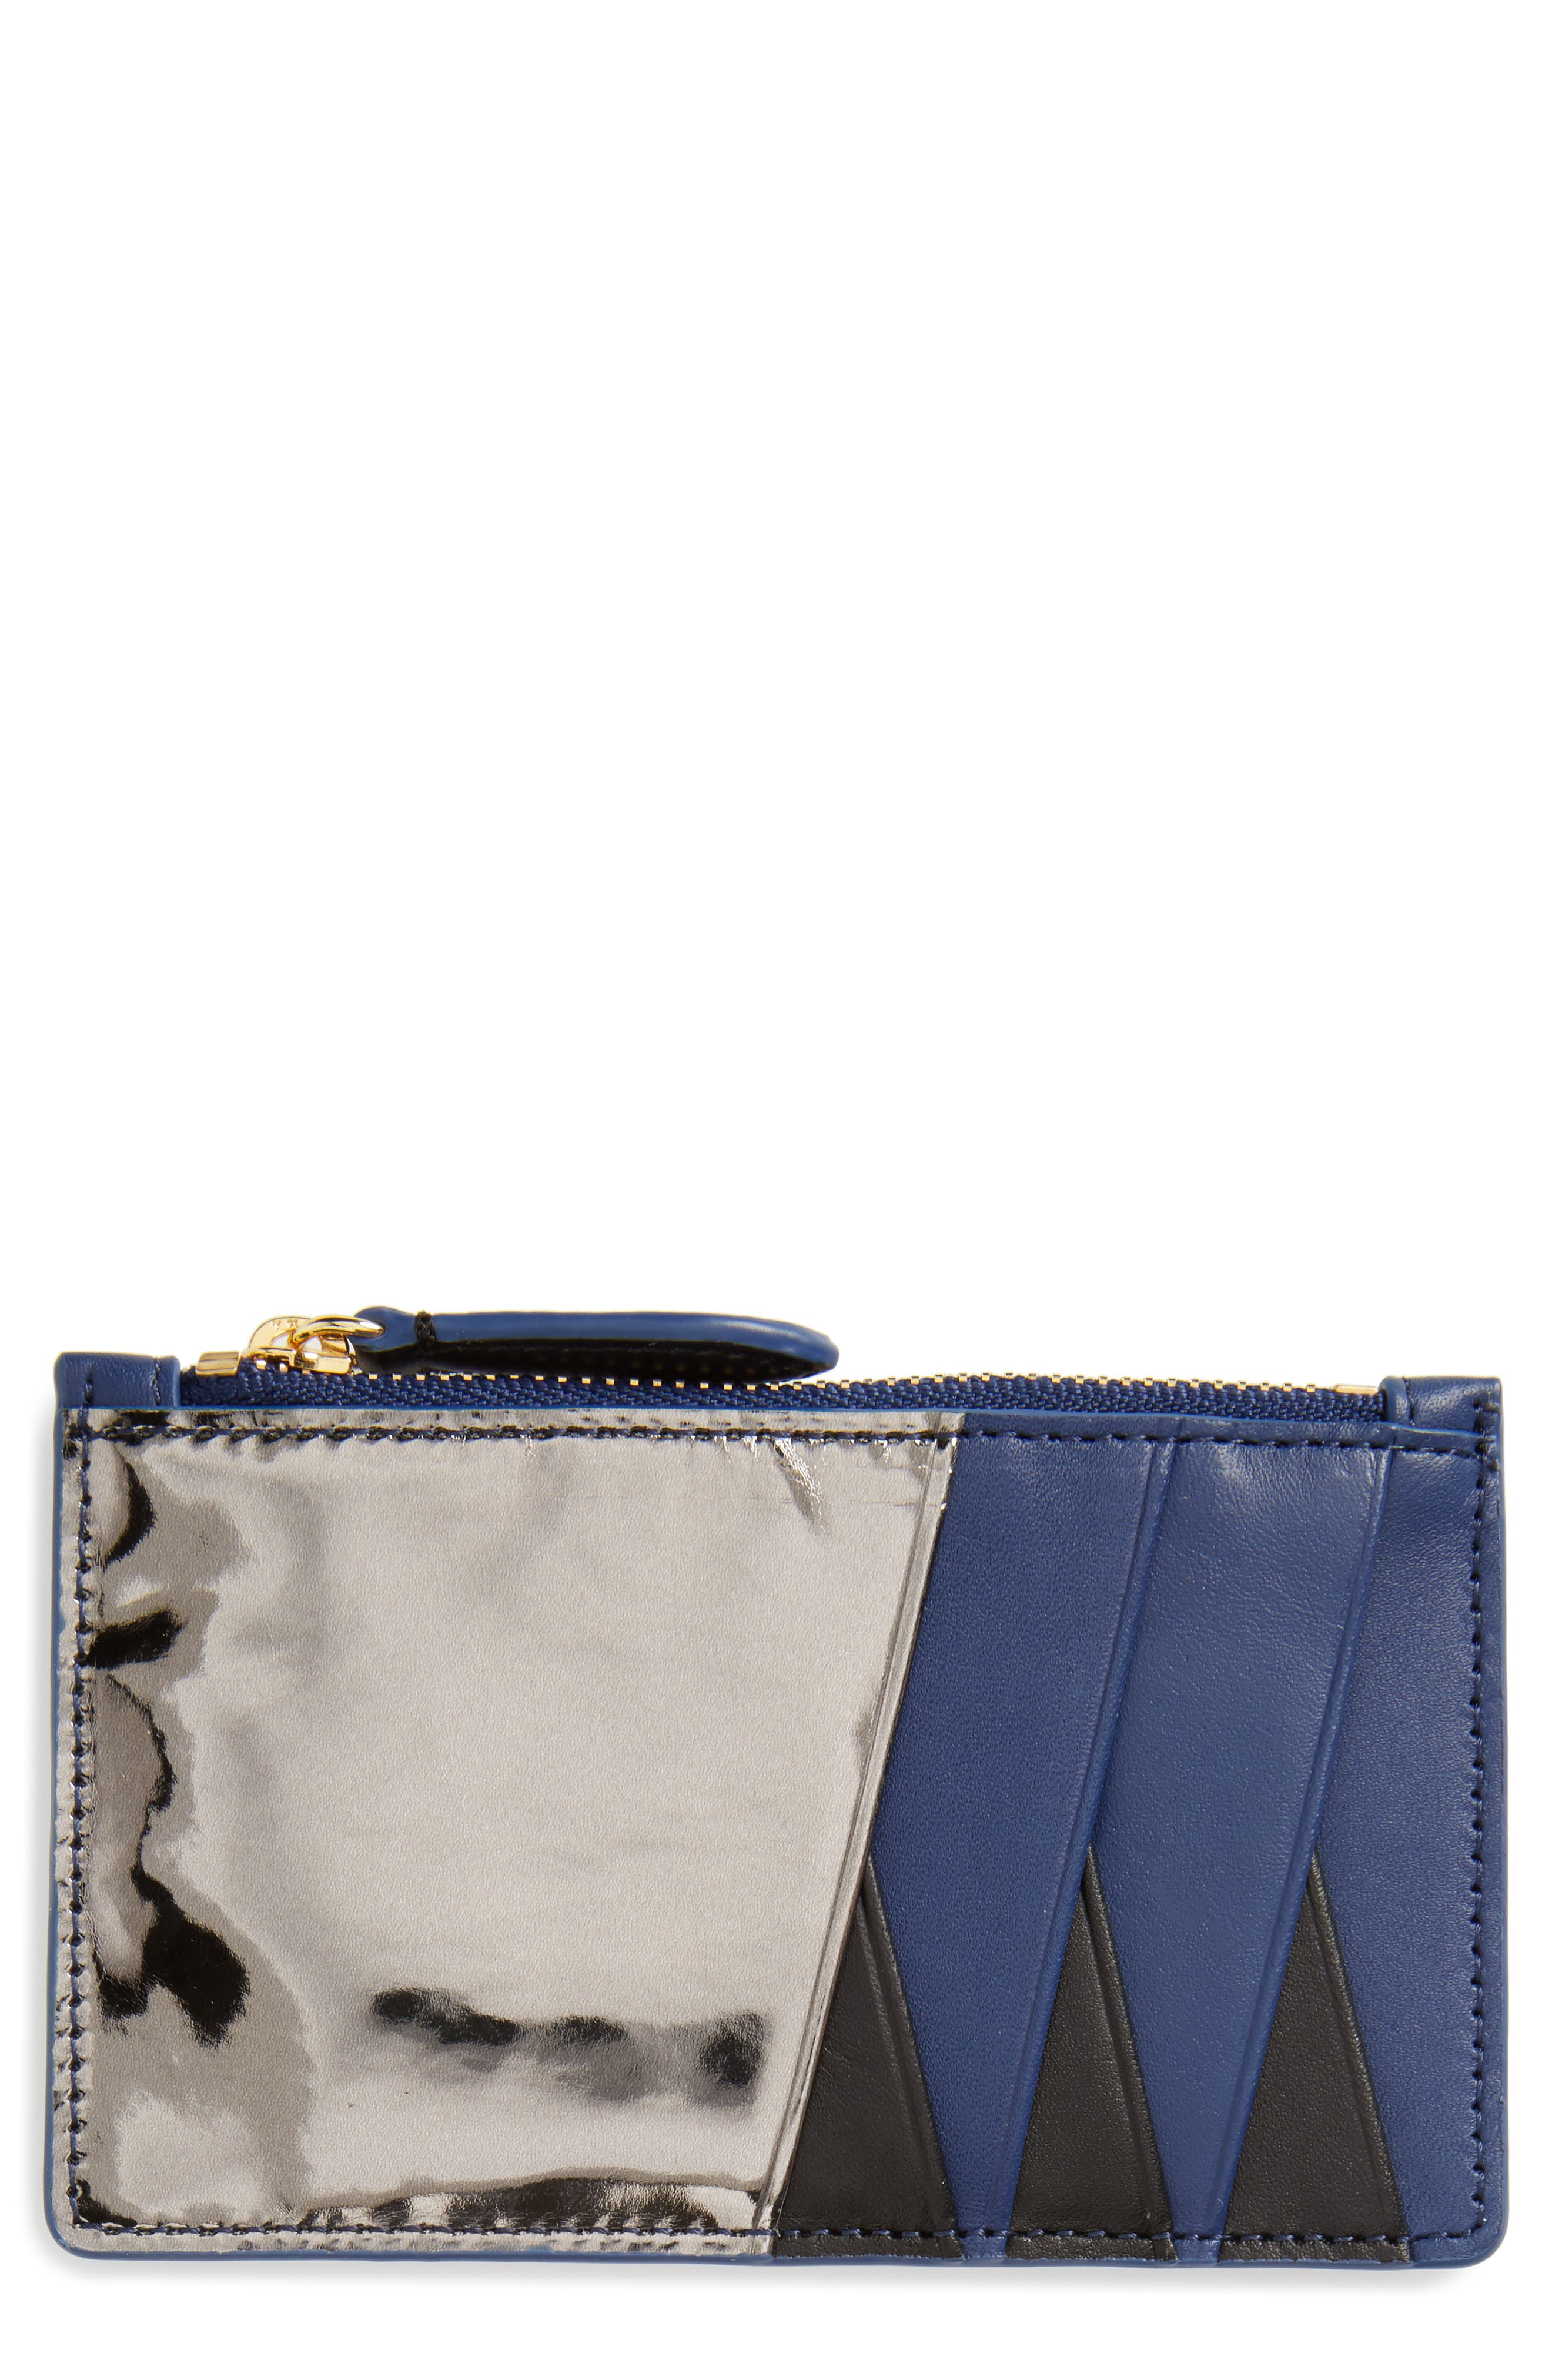 Diane von Furstenberg Leather Card Case